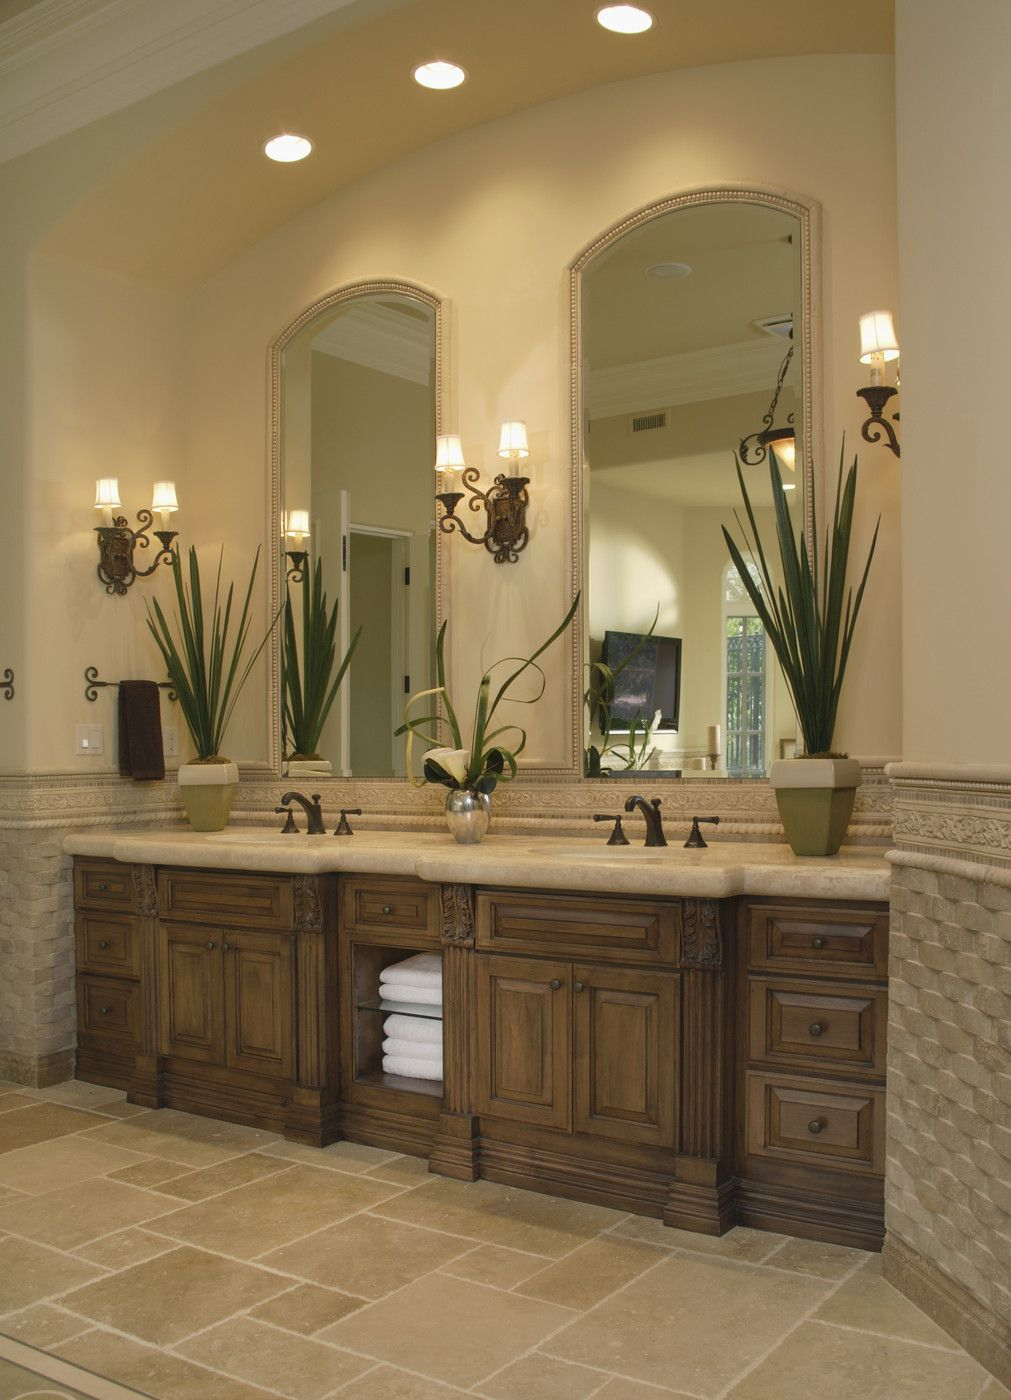 Bathroom Vanity Light Mounting Height rise and shine! bathroom vanity lighting tips